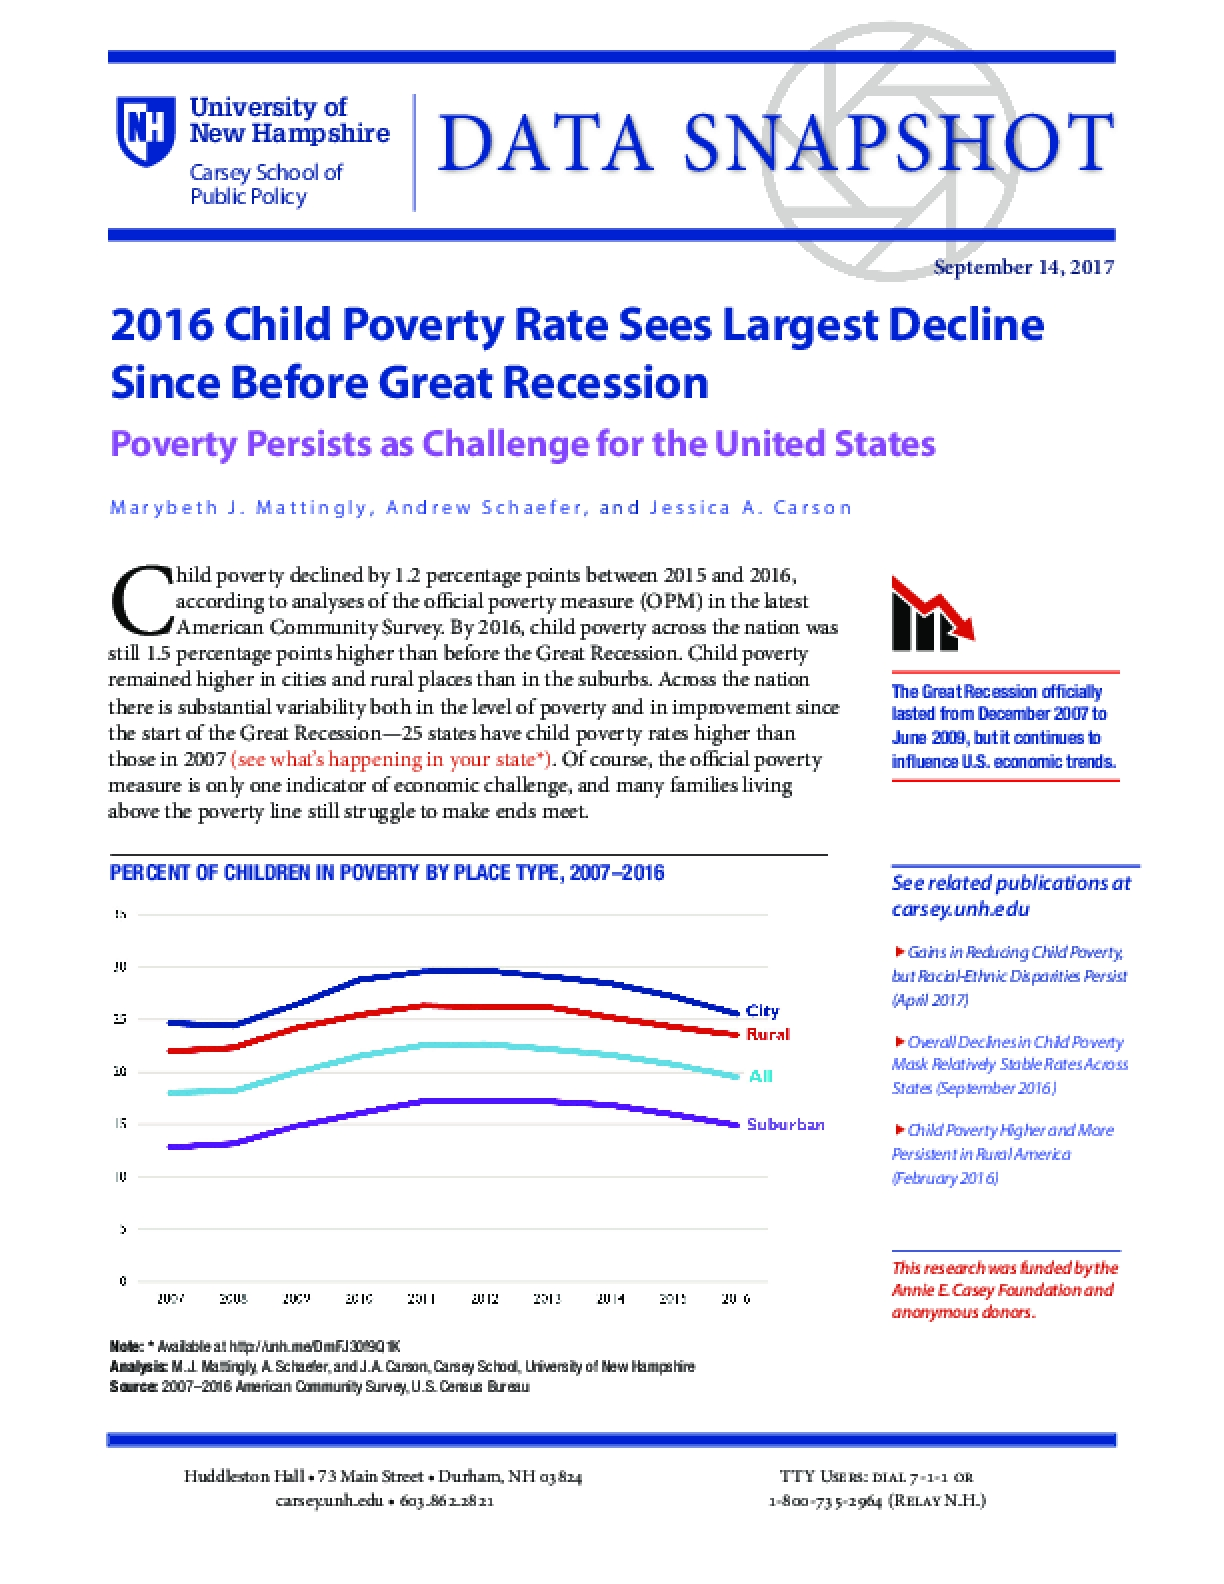 Data Snapshot: 2016 Child Poverty Rate Sees Largest Decline Since Before Great Recession